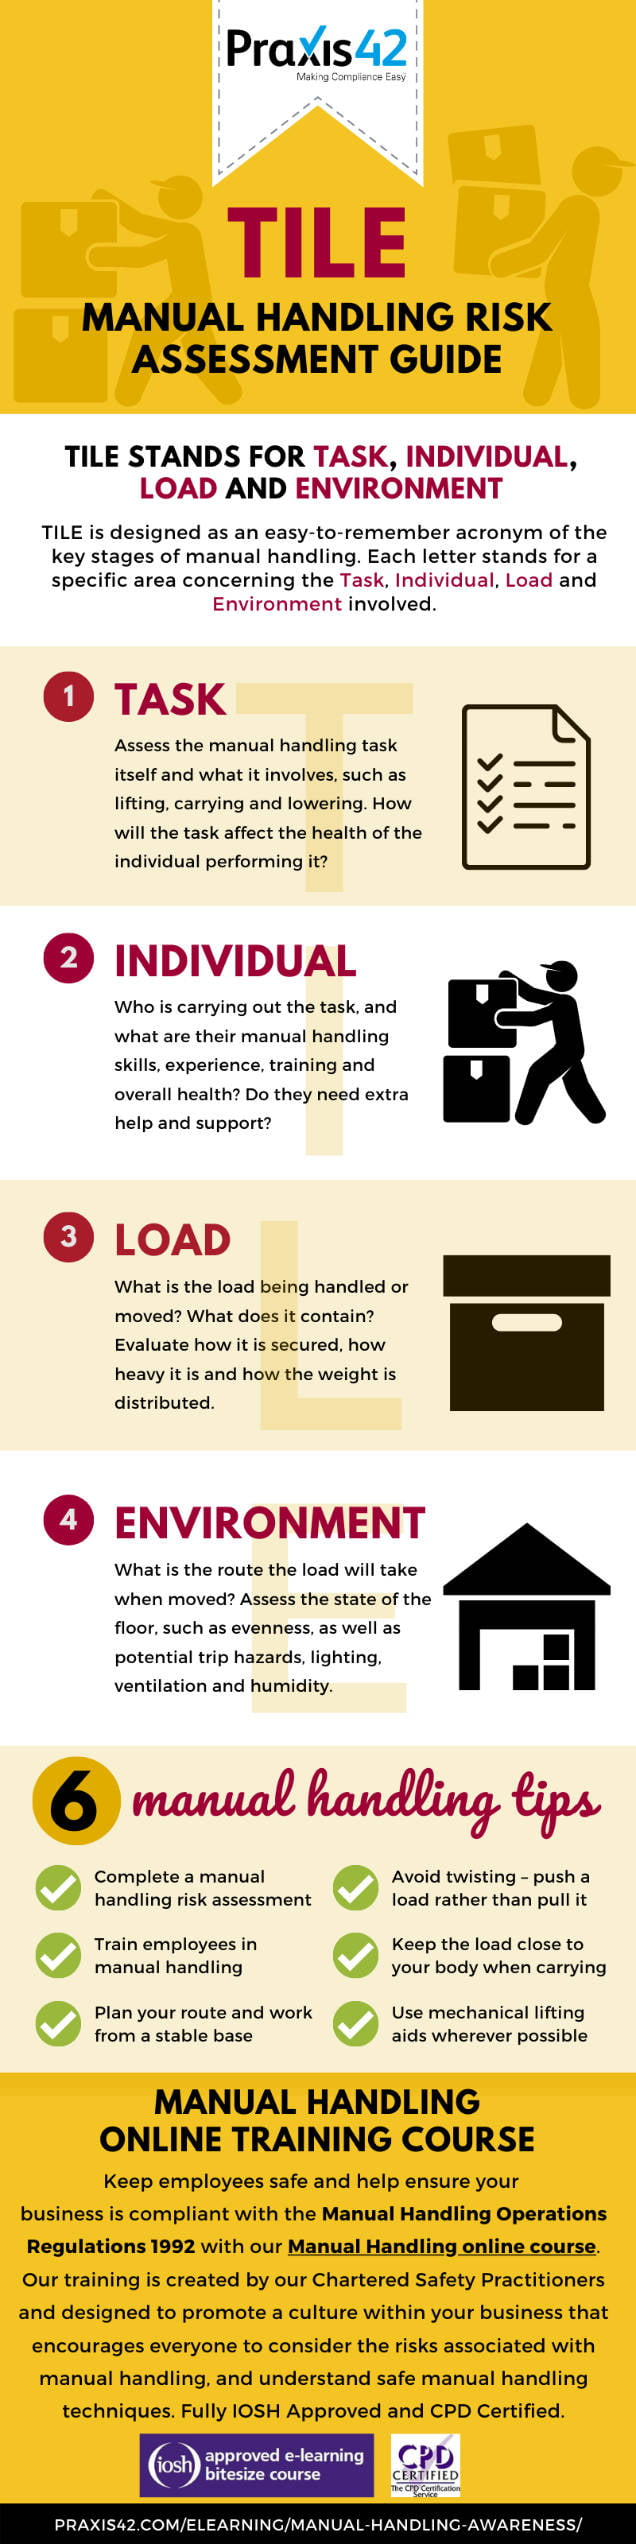 What does TILE and LITE stand for infographic - Praxis42